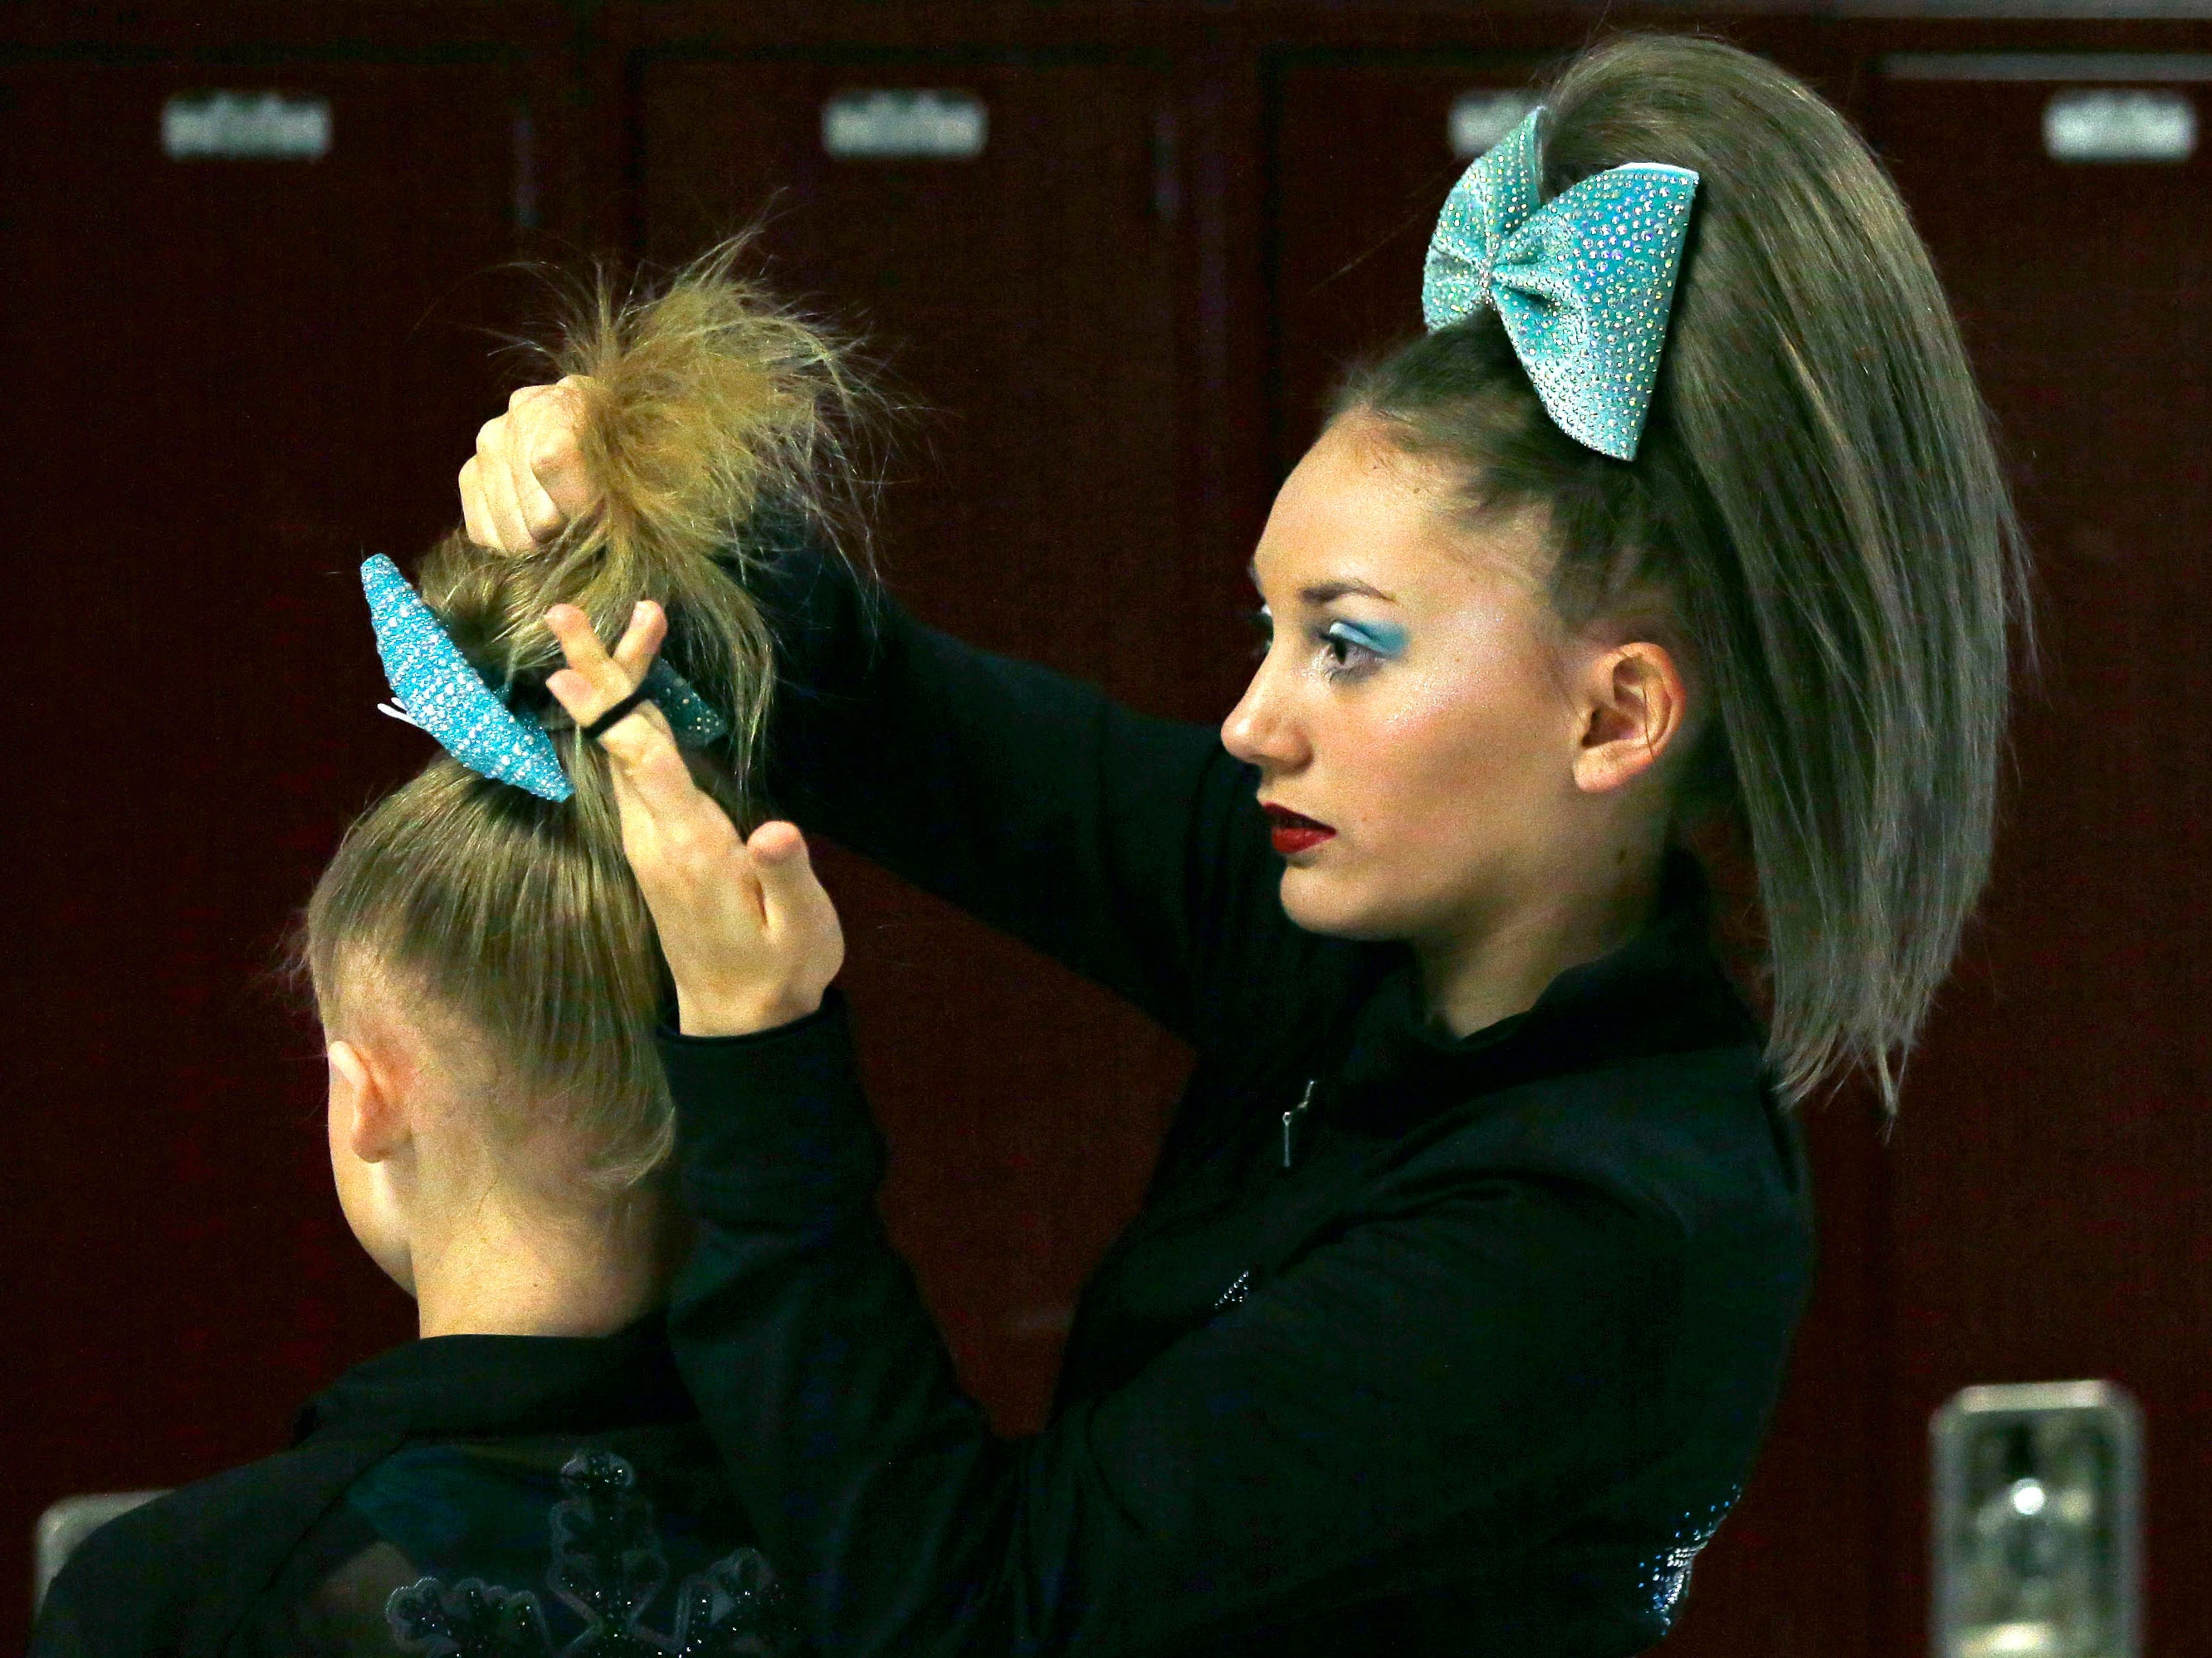 Vanessa Korth, left, of WIDC gets help with her hair from Ava Knudson as the Lightning Bolt Explosion Cheer and Dance competition takes place Saturday, January 5, 2019, at Appleton North High School in Appleton, Wis.